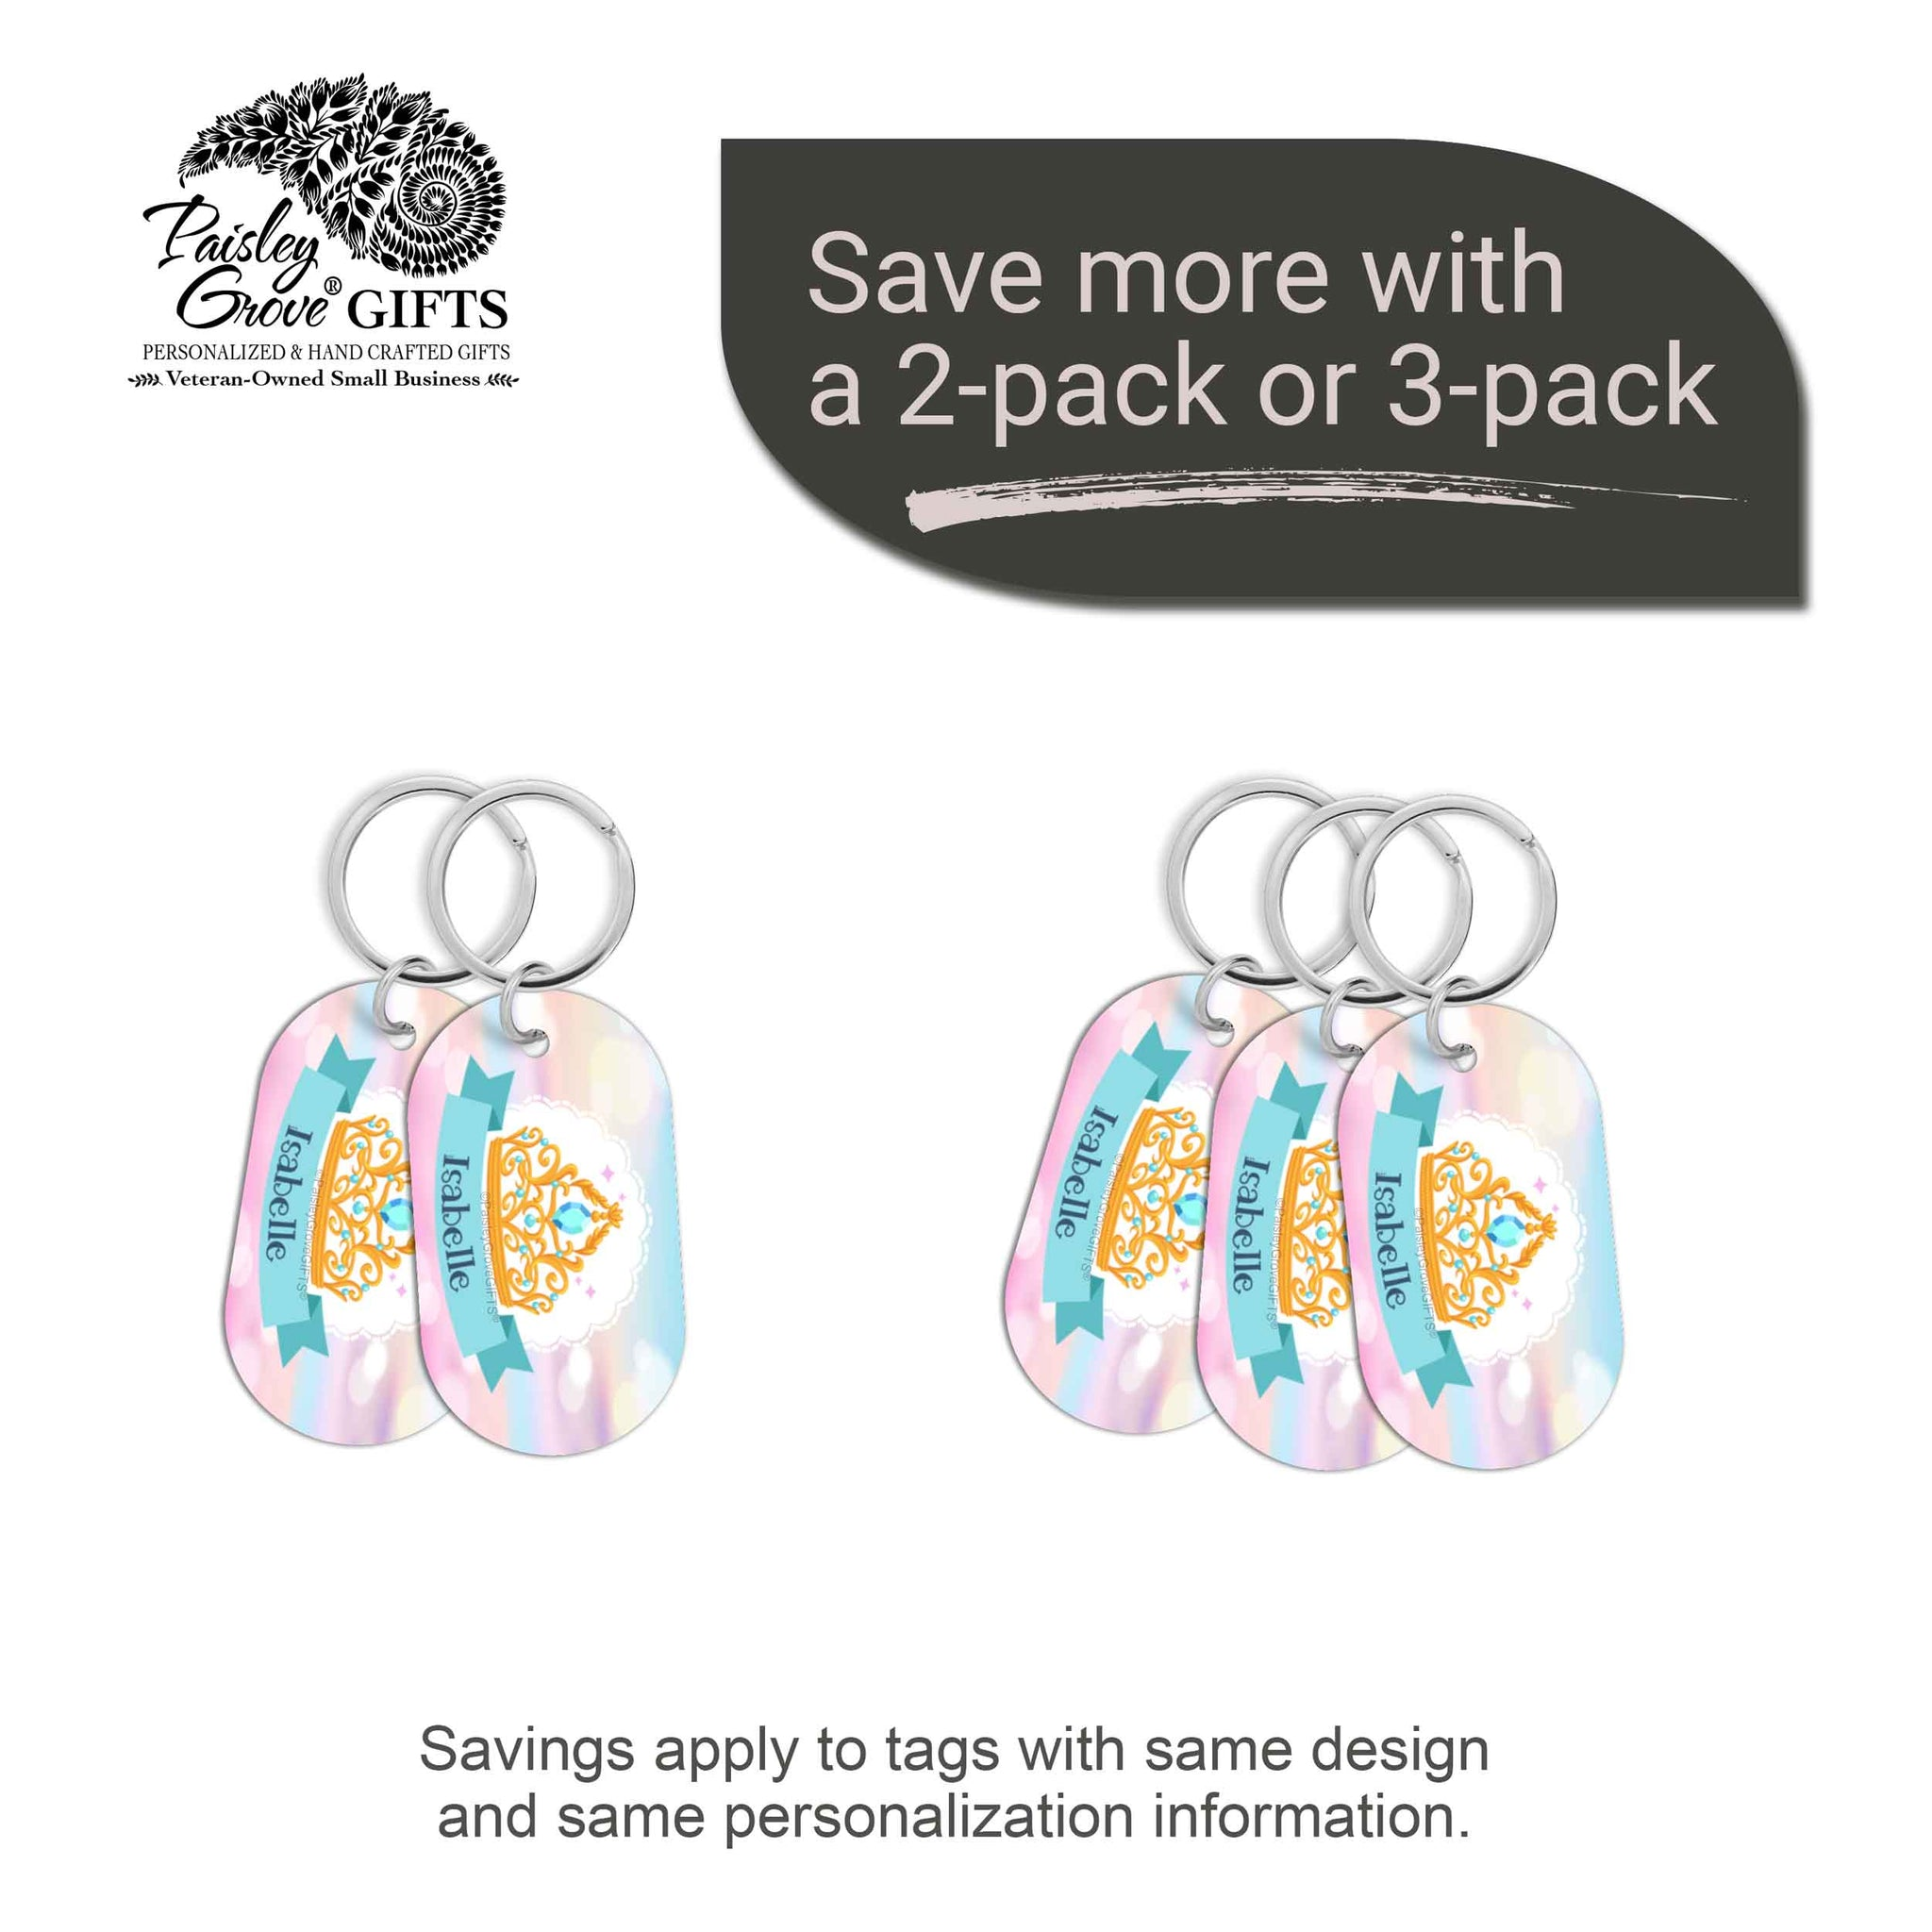 CopyrightPaisleyGroveGIFTS S070c1 Personalized bag ID tags for luggage or bags 2 or 3 pack option savings